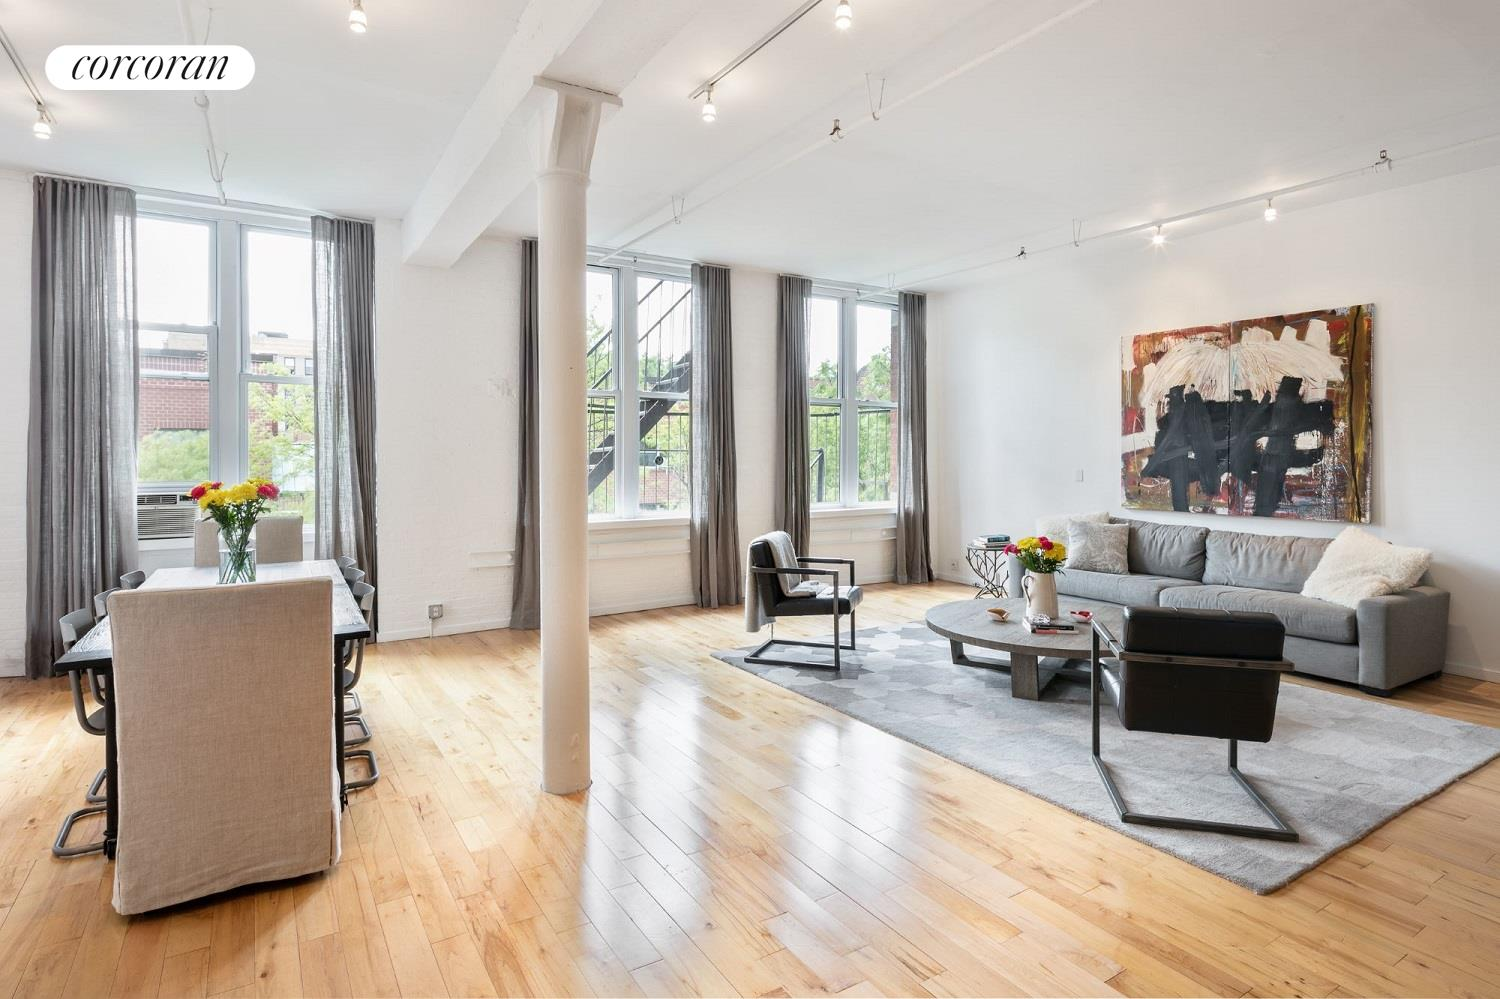 Enjoy true loft living in the East Village with this classic floor-through, two-bedroom, two-bathroom home.Filled with charming old New York details and abundant natural light, thanks to rows of windows facing north and south, this recently renovated 2,000-square-foot loft offers flexible living spaces and plenty of room for lavish entertaining. Enter the truly massive great room and take in soaring ceilings supported by original cast iron columns while three double windows flood the space with southern light. Gleaming hardwood floors will lead you to the updated, open and modern chefs kitchen outfitted with abundant lacquer cabinetry, full-size stainless steel appliances and an extra-large island.Two serene bedrooms are placed at the rear of the home. The roomy master includes an oversized closet, dressing area and en suite bathroom, while the second bedroom is placed near the home's second full bathroom. A separate laundry room with an in-unit washer-dryer and utility sink rounds out this home's coveted details.735 East 9th Street is a handsome brick warehouse co-op conversion that has been home to an exciting array of artists over its hundred-year history. The elevator building is pet-friendly and offers a bike room. Set in historic Alphabet City, you're located less than two blocks from lovely Tompkins Square Park home to a year-round Sunday greenmarket and great community events like the Allen Ginsberg Howl Festival and the Charlie Parker Jazz Festival. A number of bus lines stop within two blocks of the home, including crosstown service via the M8 and M14D, and the L-train station at First Avenue is less than 15 minutes away.